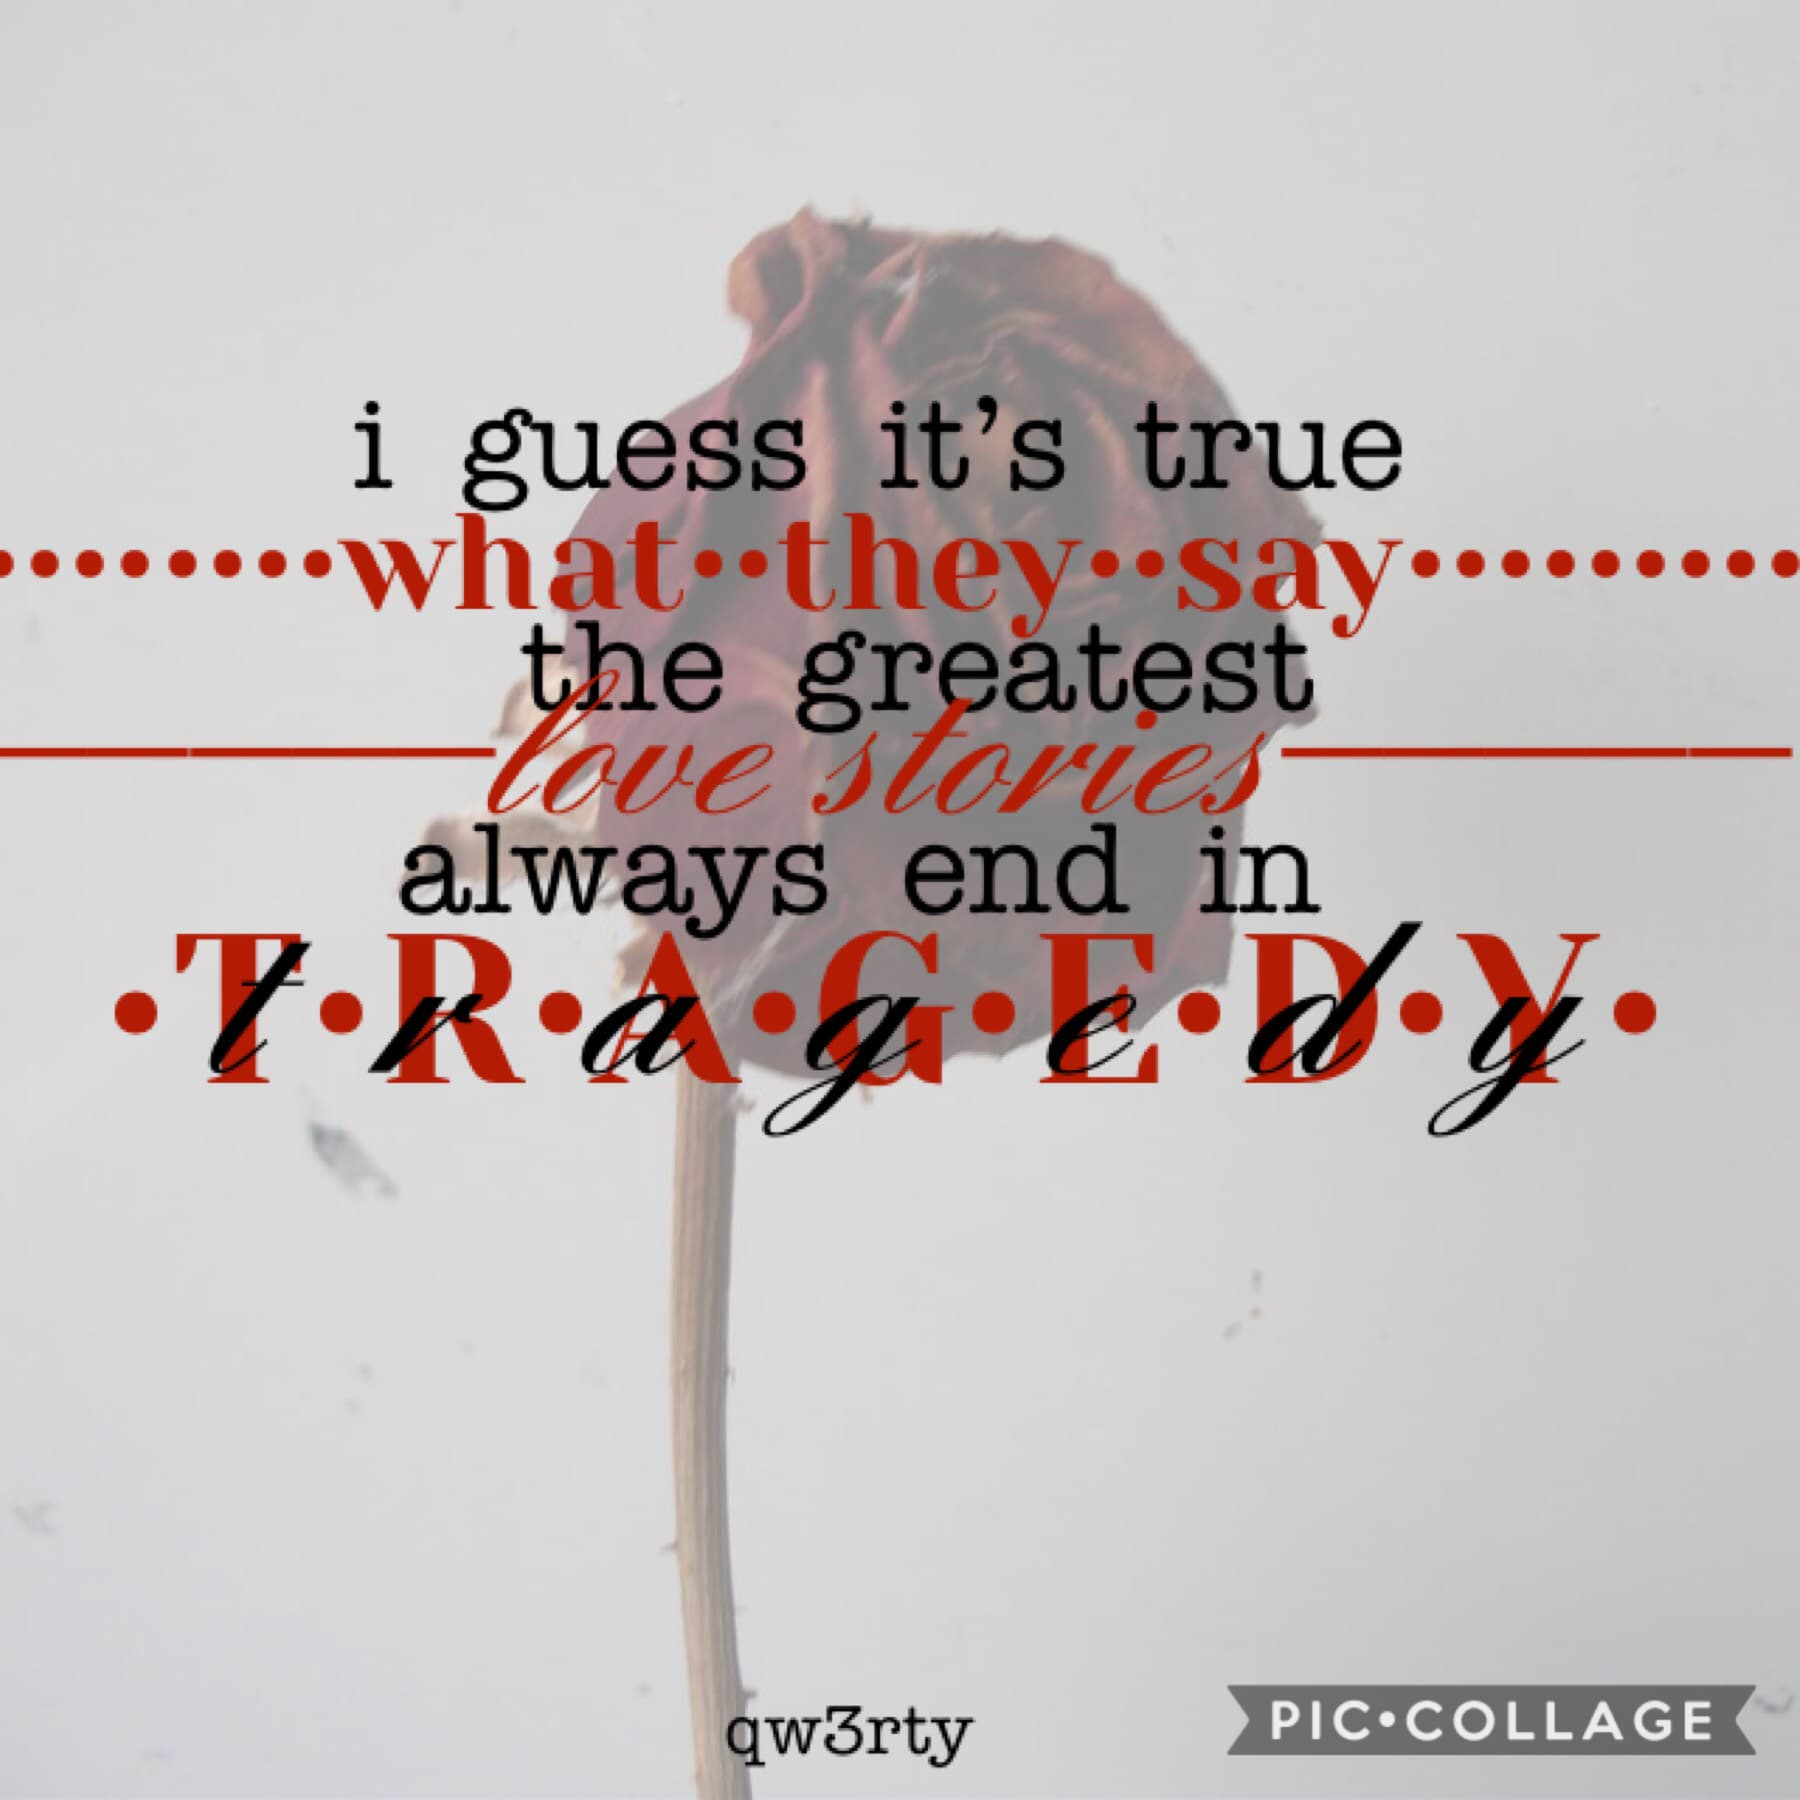 Tappppy This is a quote from one my favorite TV shows, Ninjago!!! IT IS SO EMOTIONAL FOR ME!!!!!!!!!!!!!!! ❤️Leeli